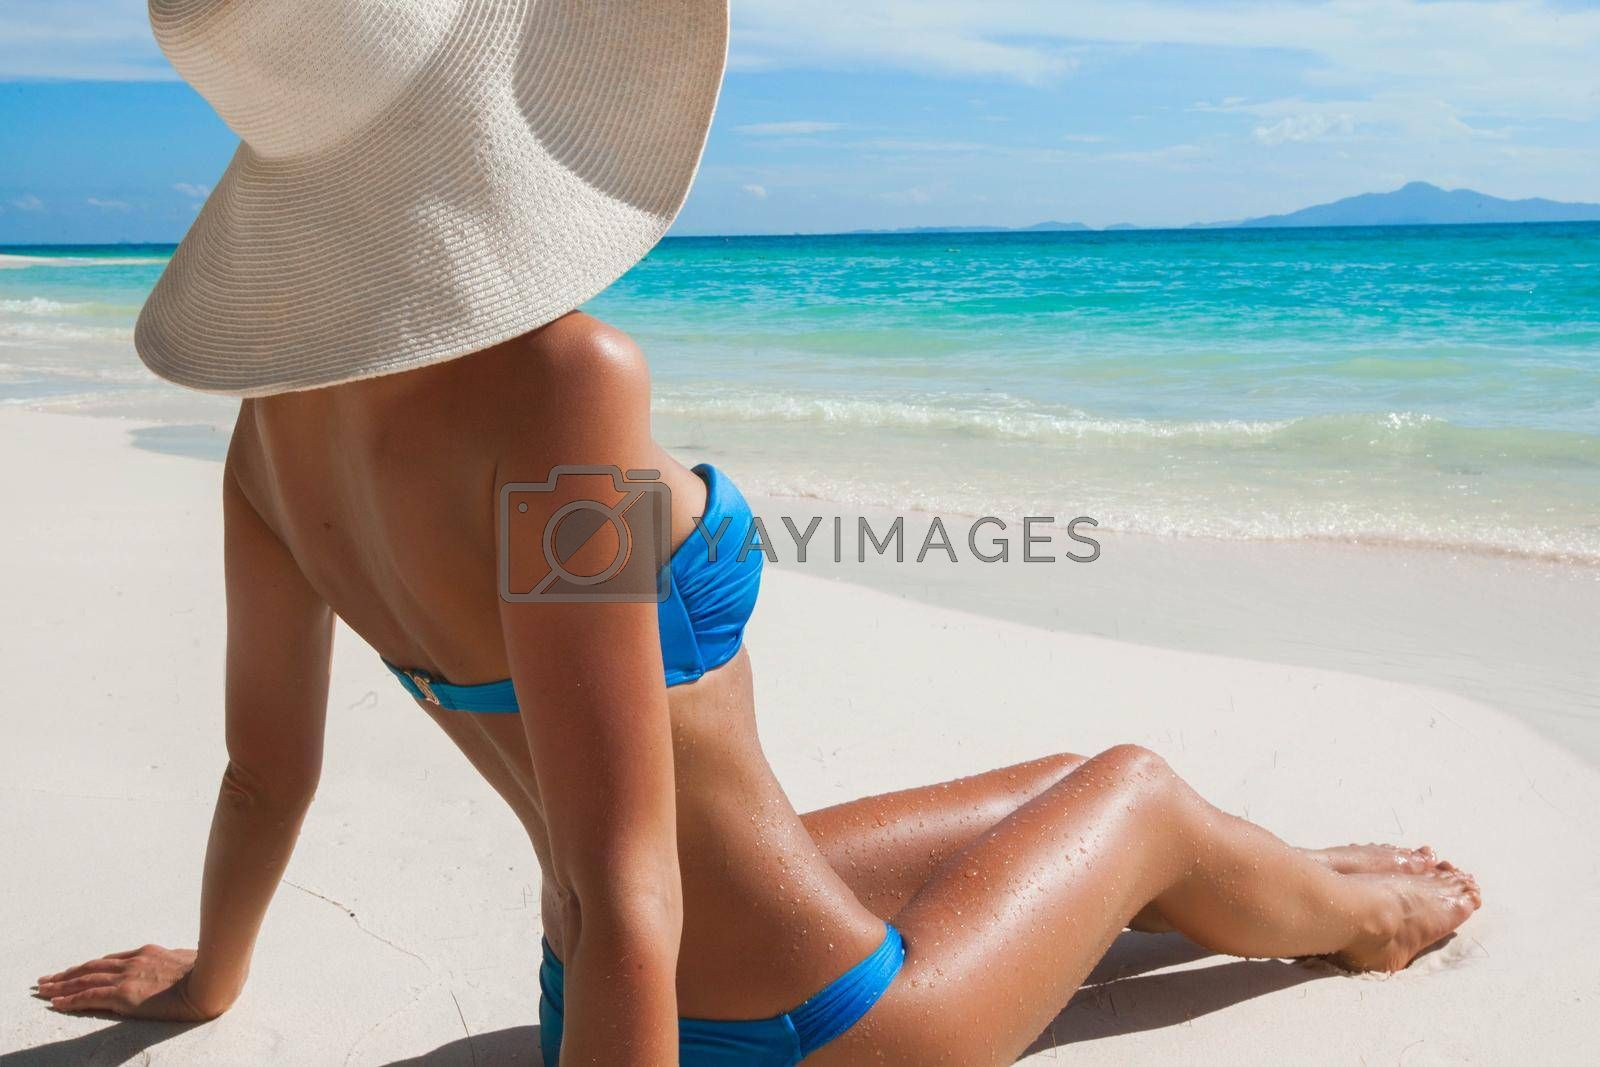 Royalty free image of Woman in sun hat sitting on beach by Yellowj